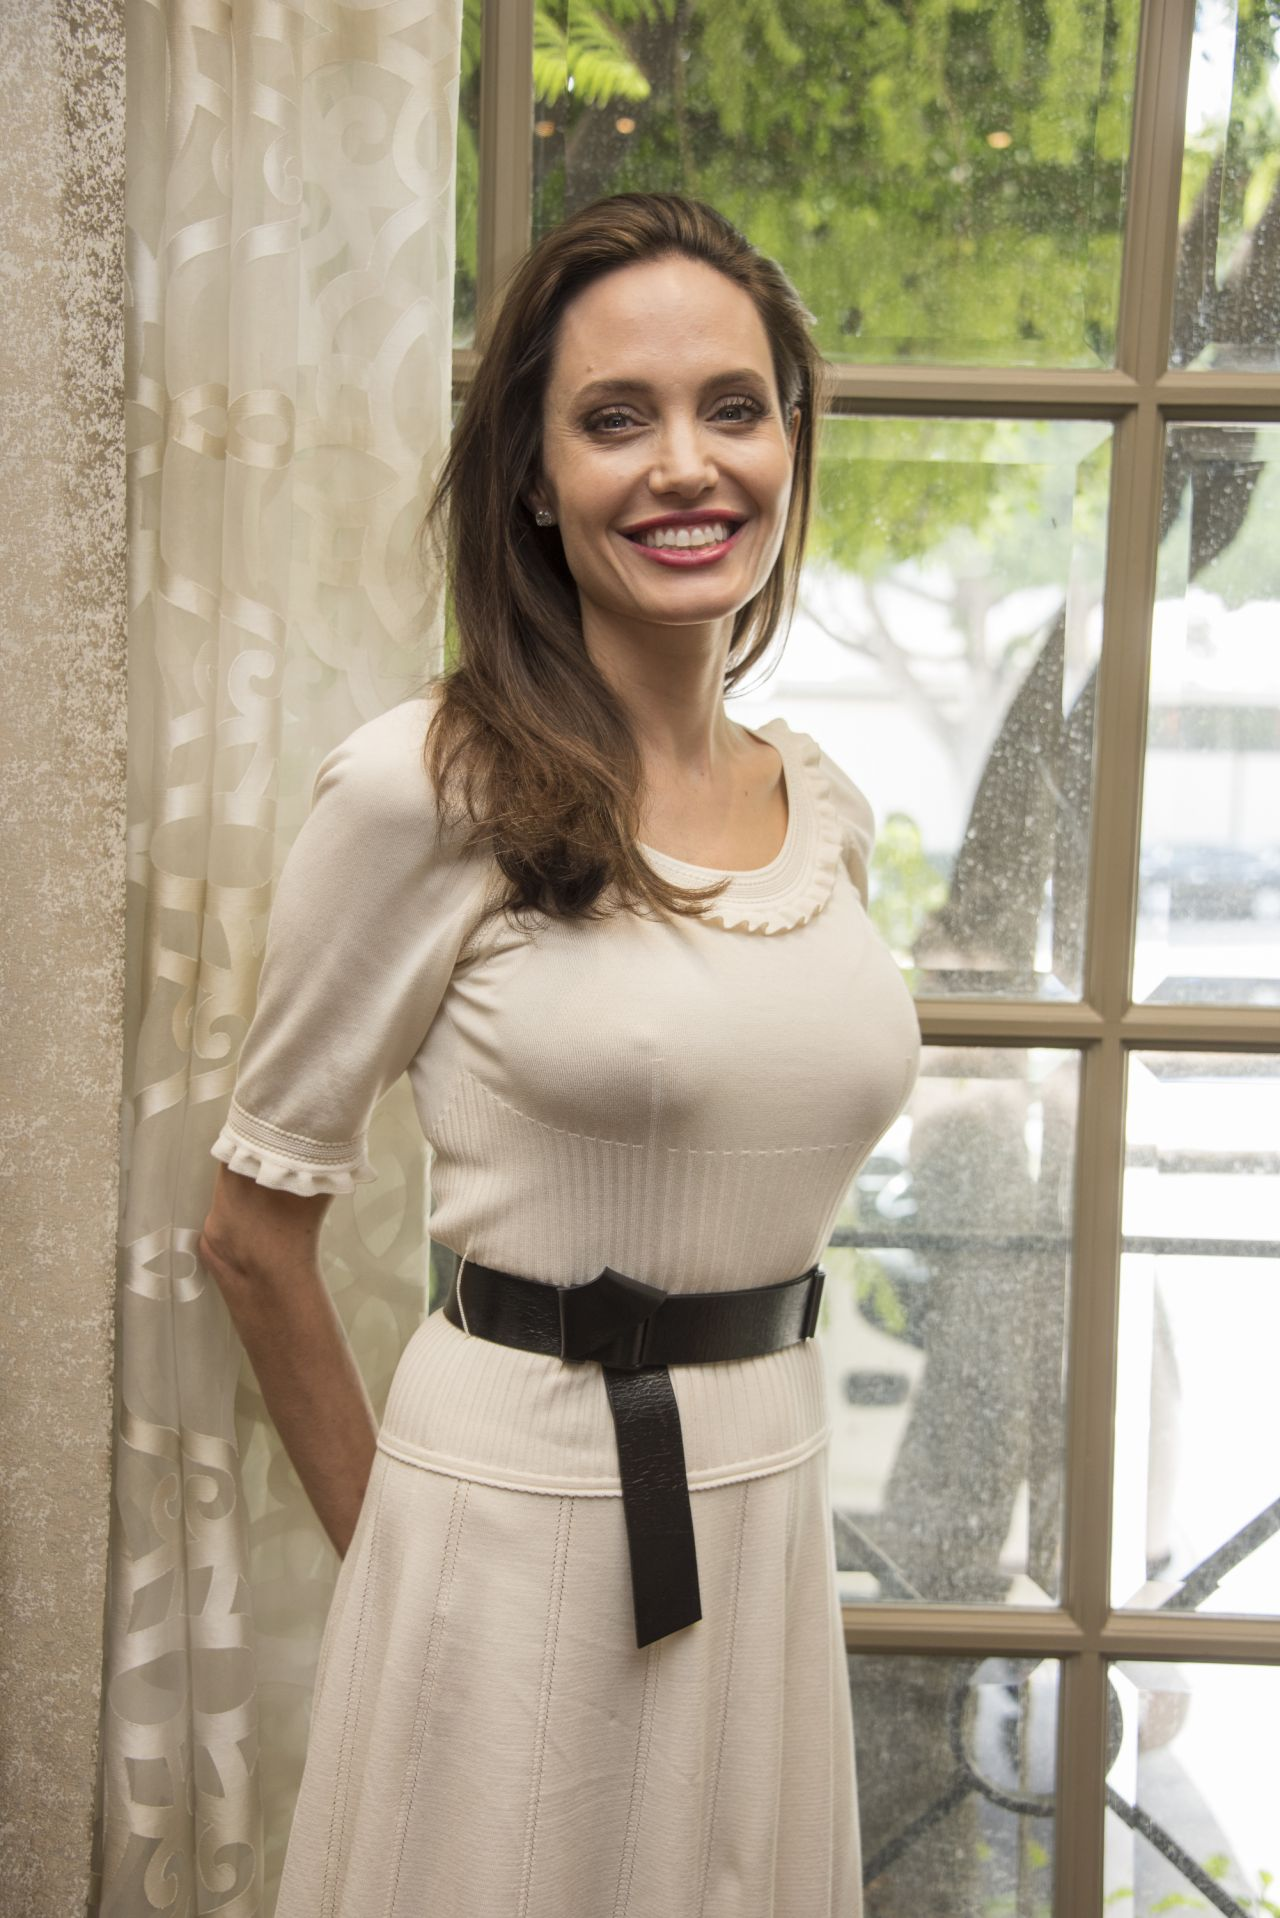 http://celebmafia.com/wp-content/uploads/2017/09/angelina-jolie-first-they-killed-my-father-press-conference-in-beverly-hills-08-25-2017-0.jpg